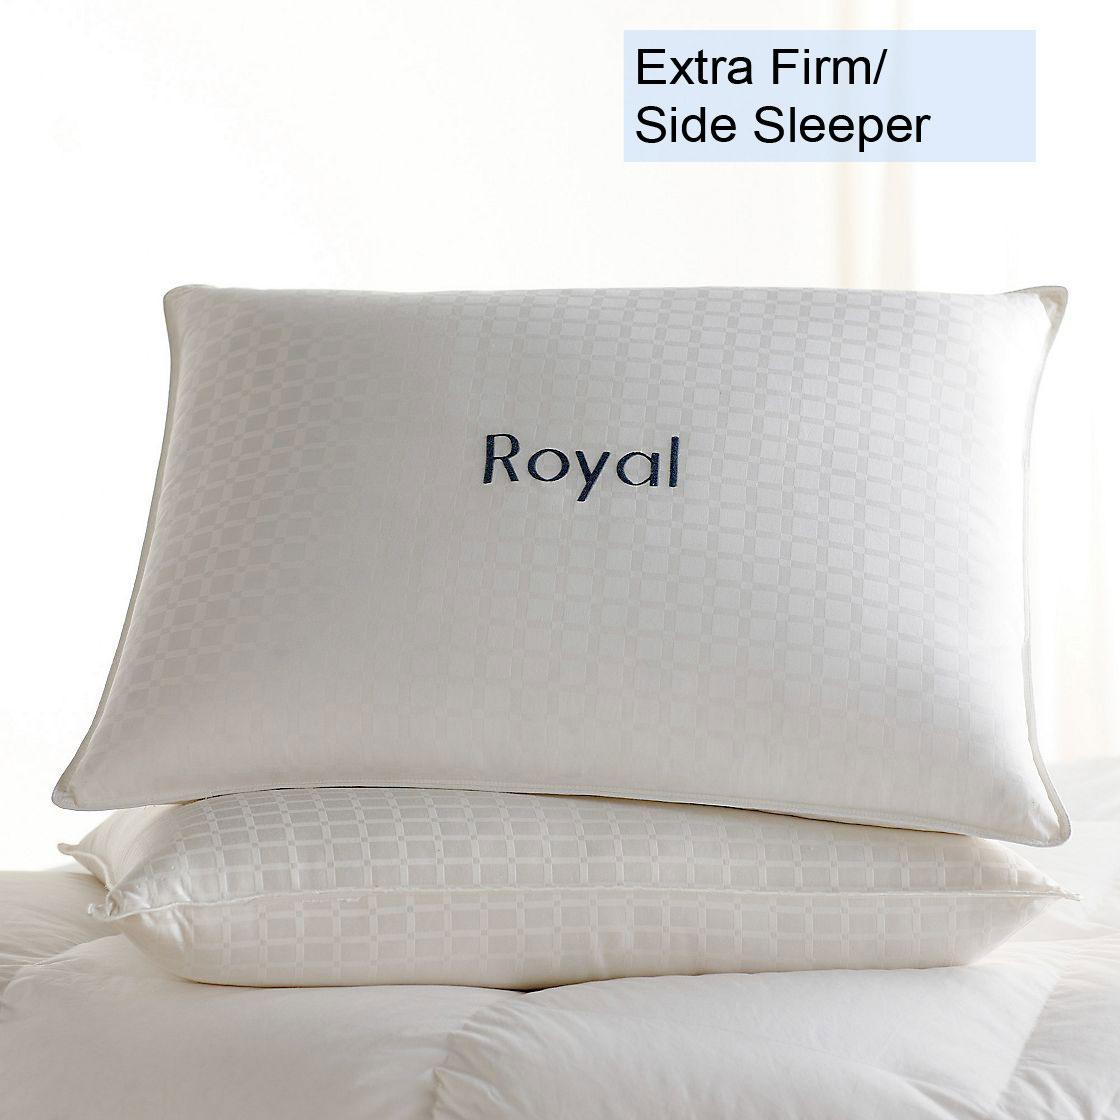 Legends® Royal Down Pillow – Extra- Firm, Side Sleeper